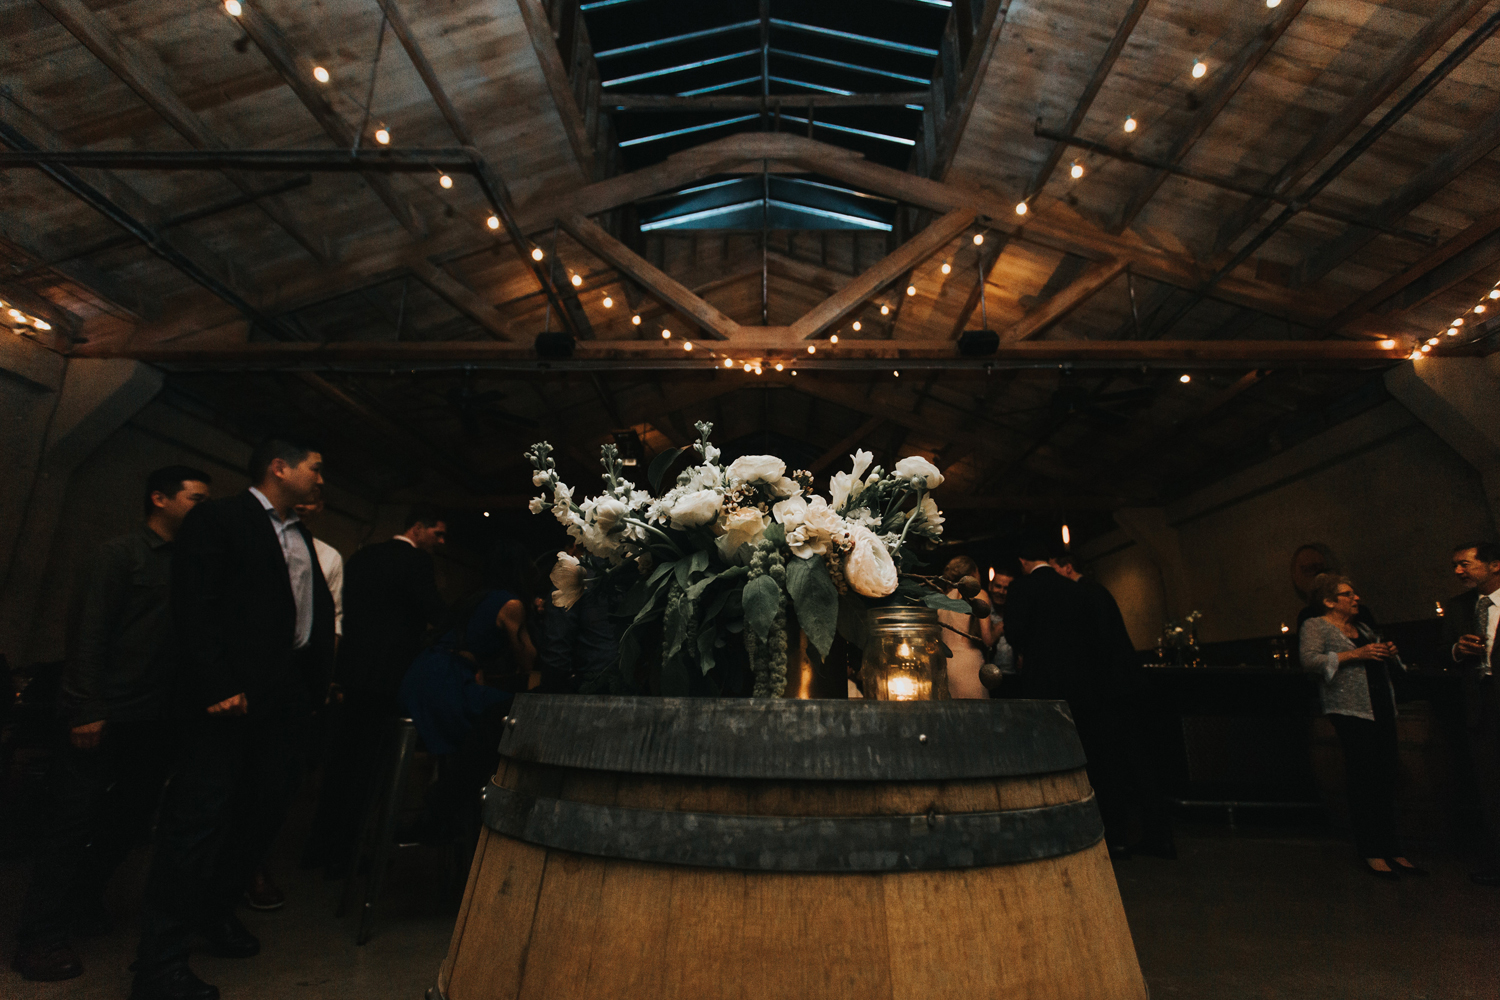 wedding-florist-madison-wisconsin-centerpiece-wine-barrel.jpg